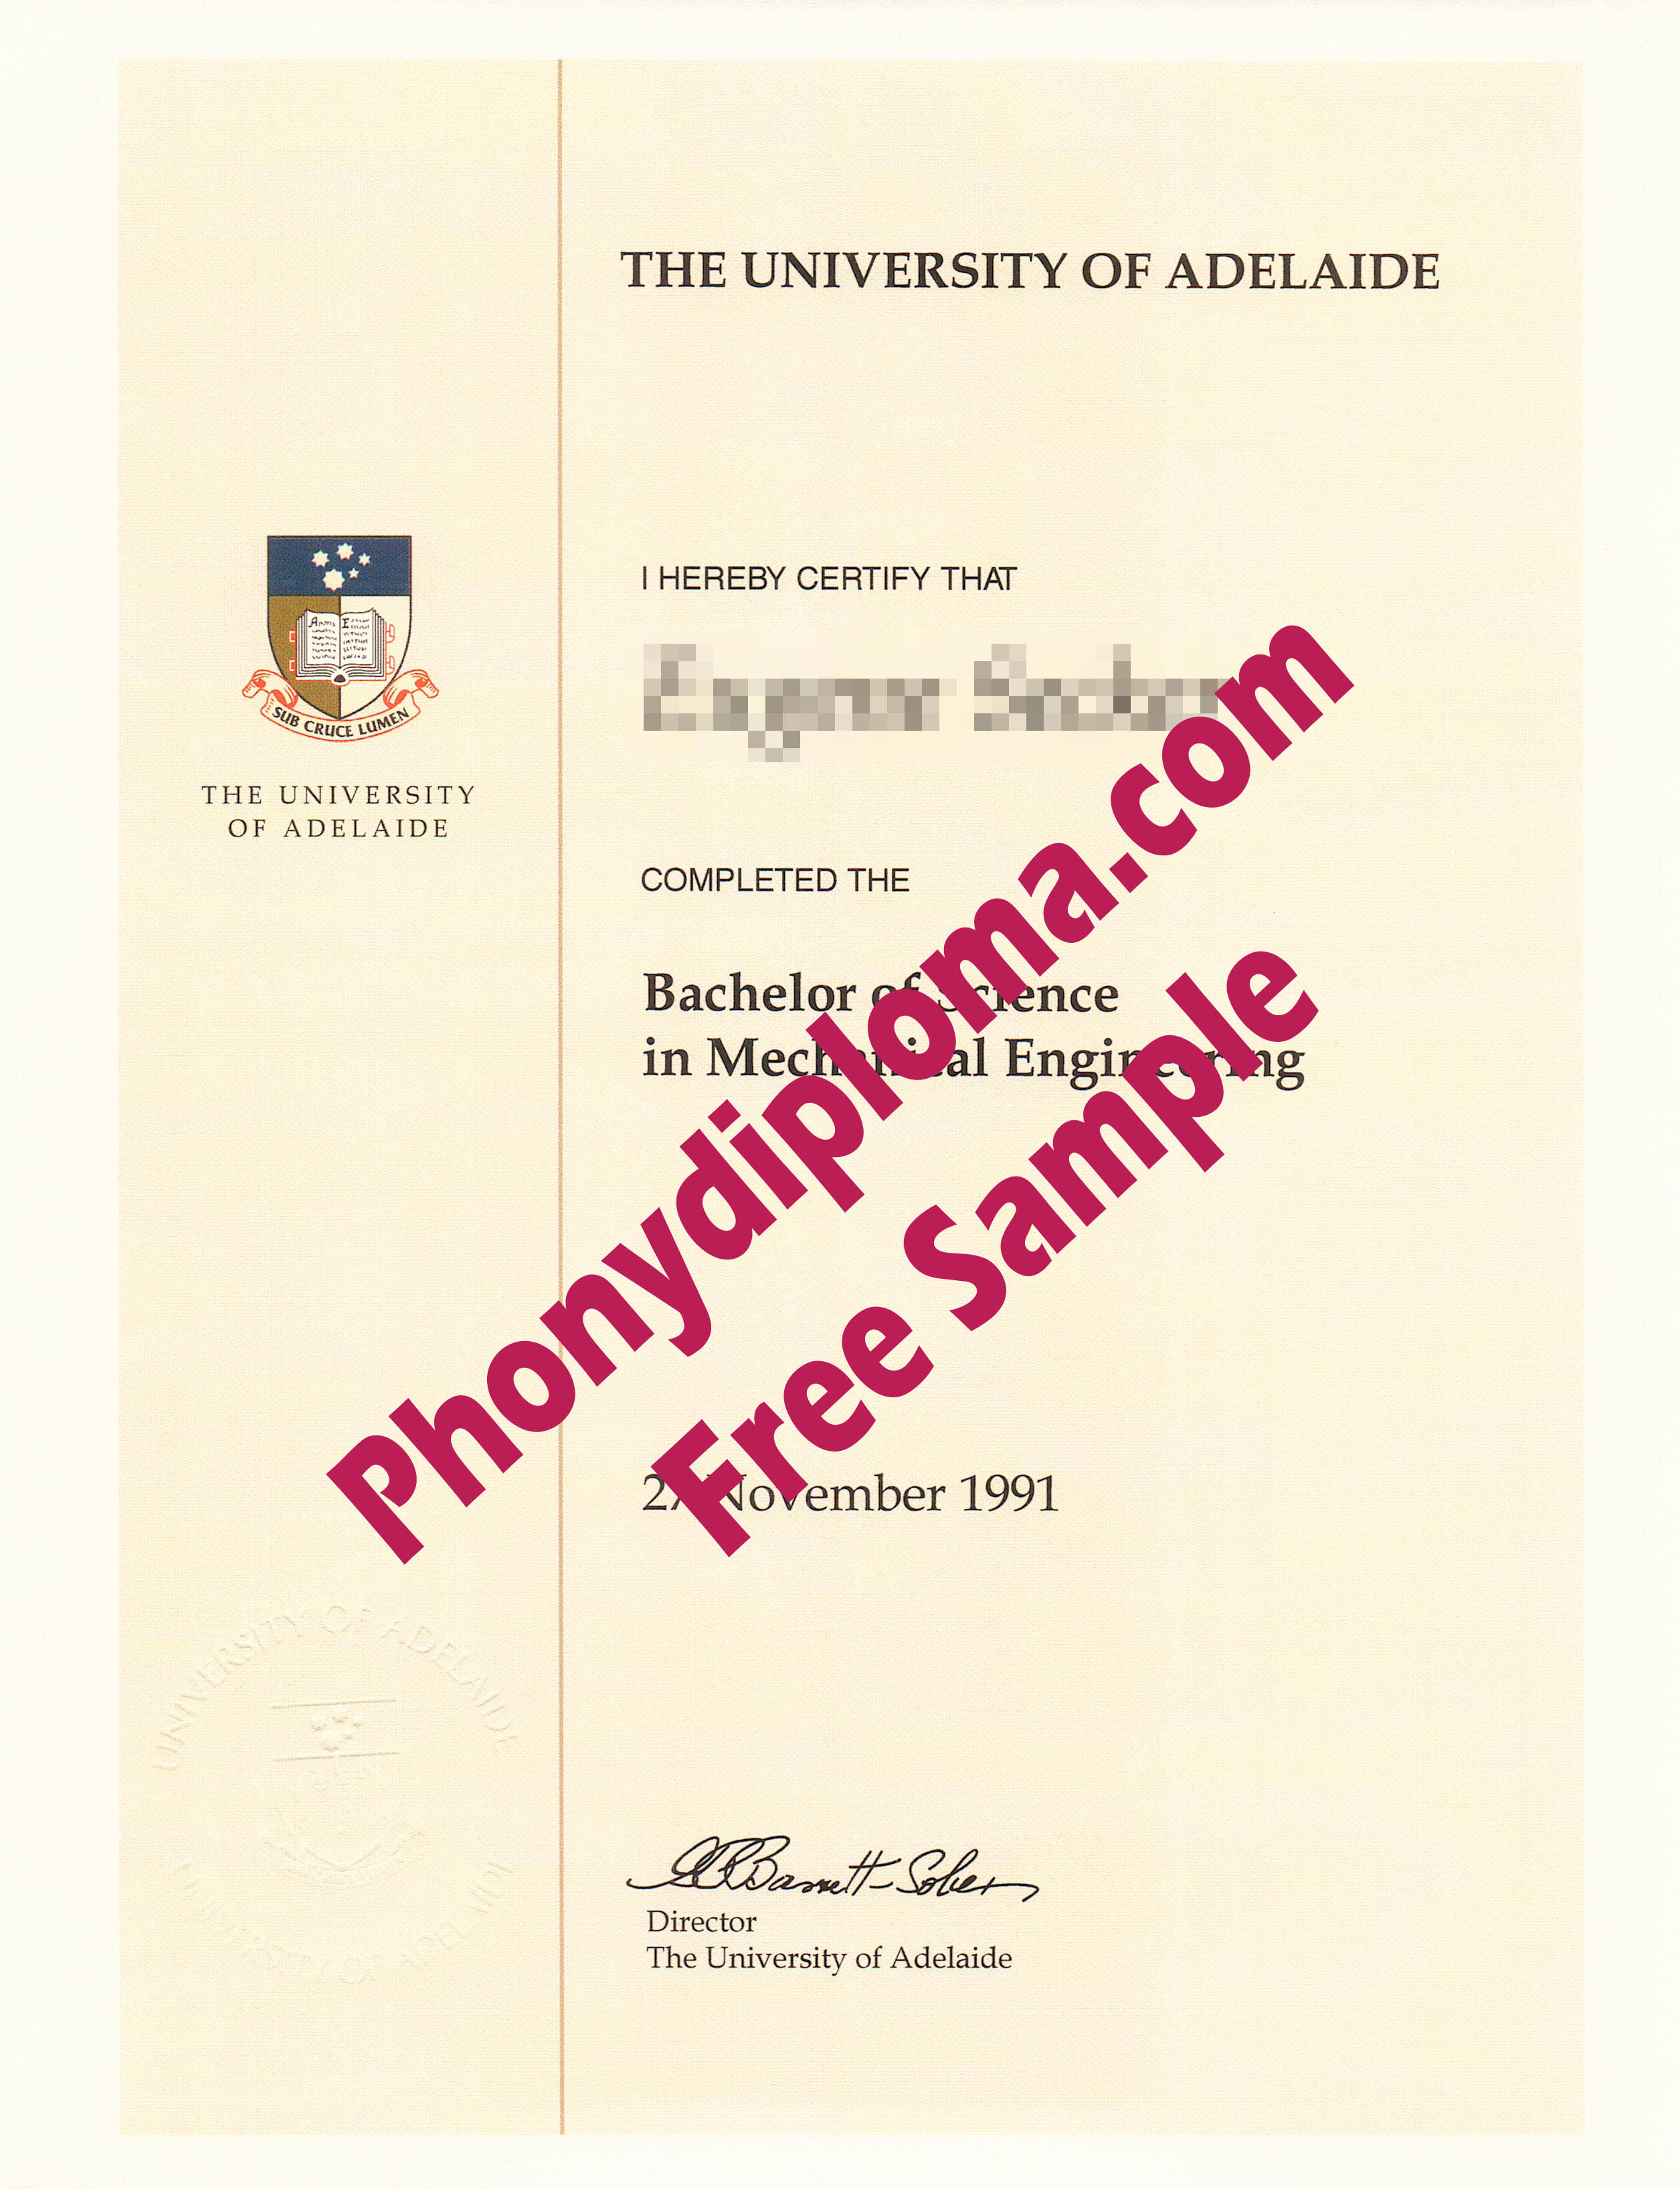 University Of Adelaide Free Sample From Phonydiploma (2)